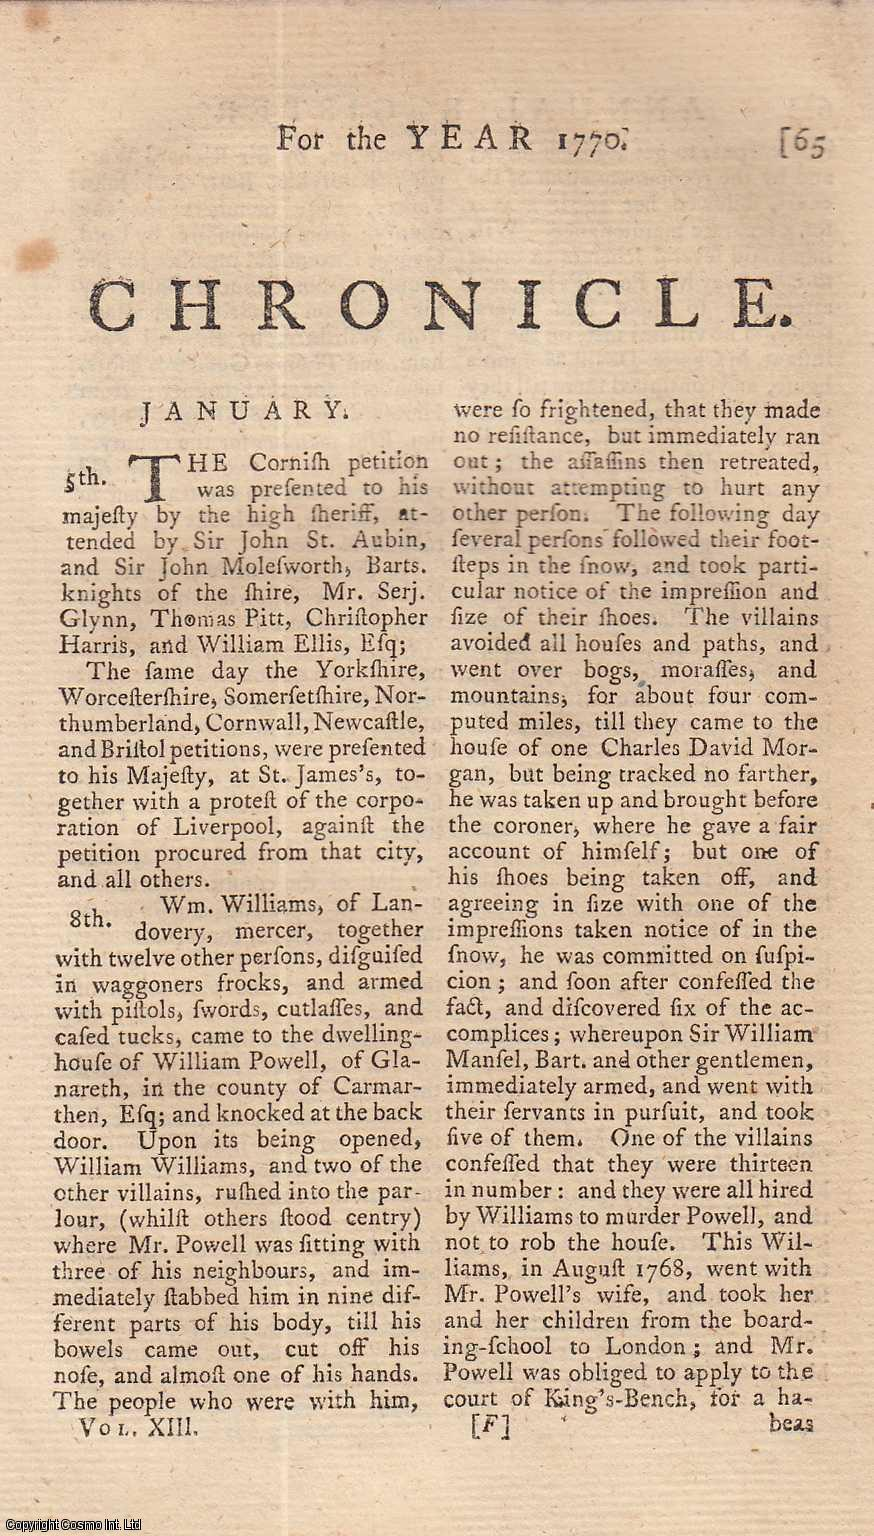 Chronicle. (for 1770), ---.